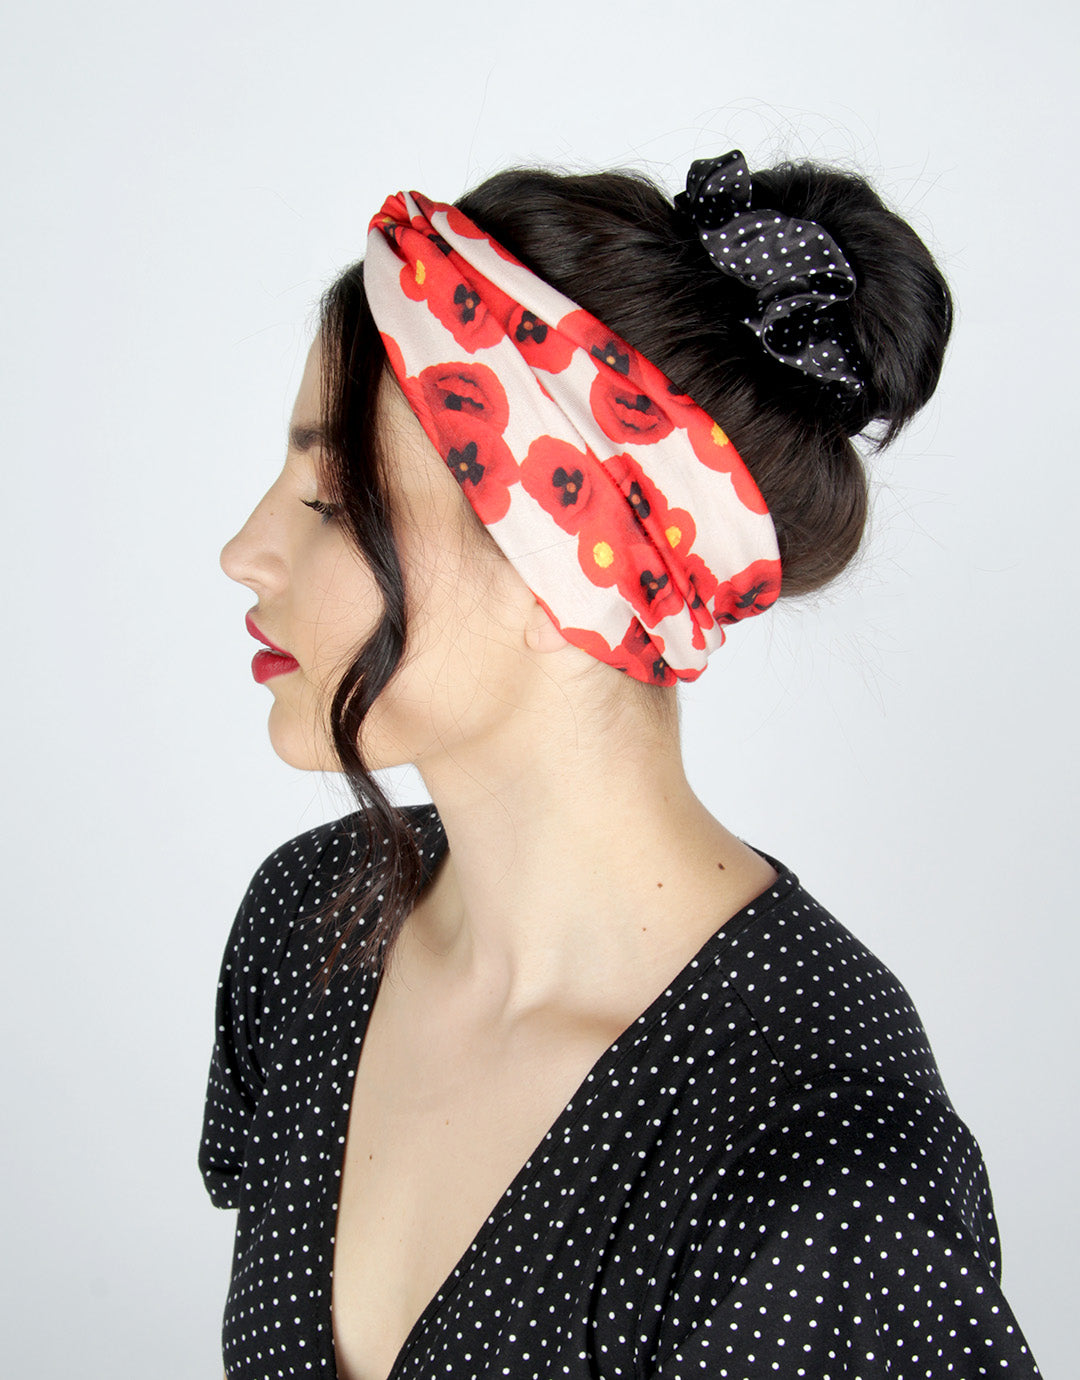 BANDED Women's Headwraps + Hair Accessories - Provincial Poppy - Classic Twist Headwrap